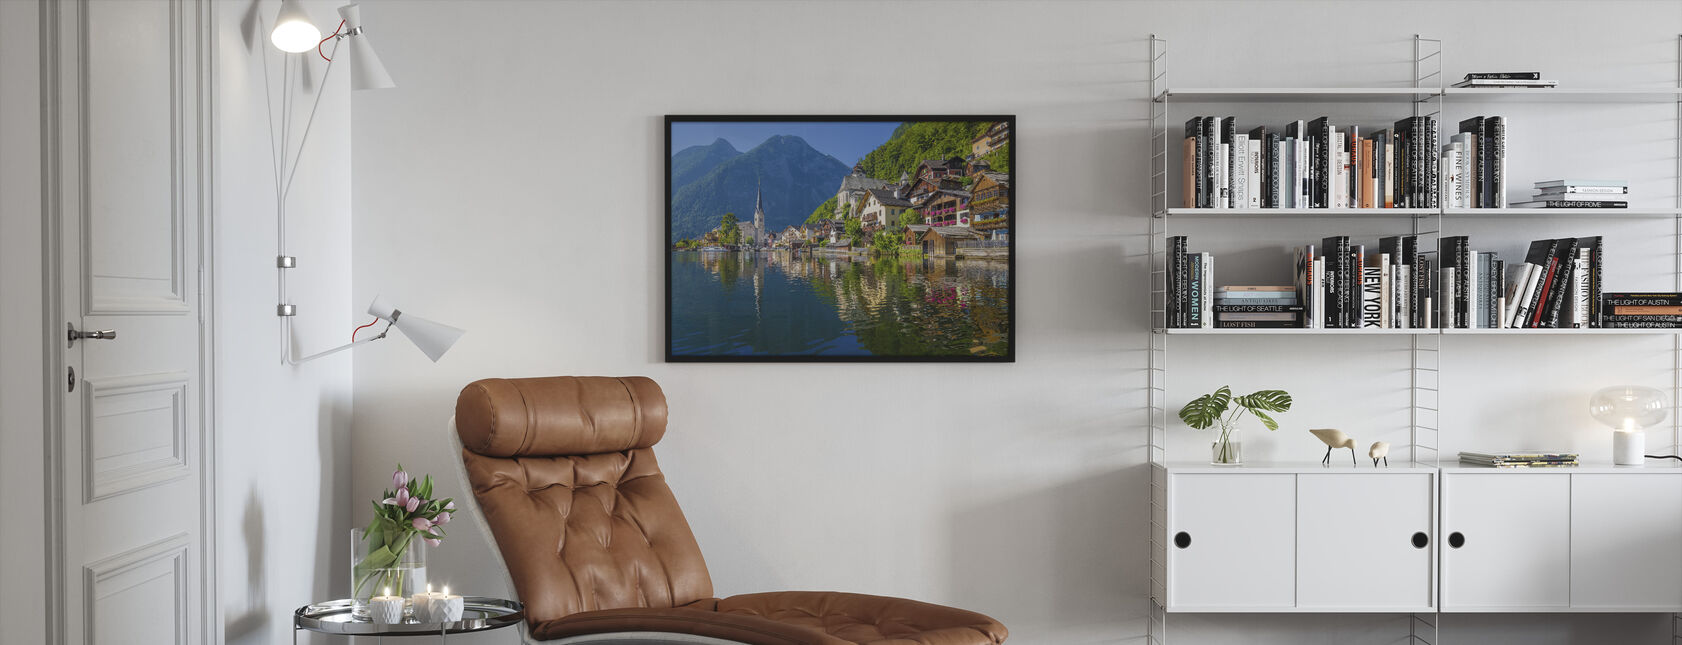 Mountain Village in the Alps - Framed print - Living Room